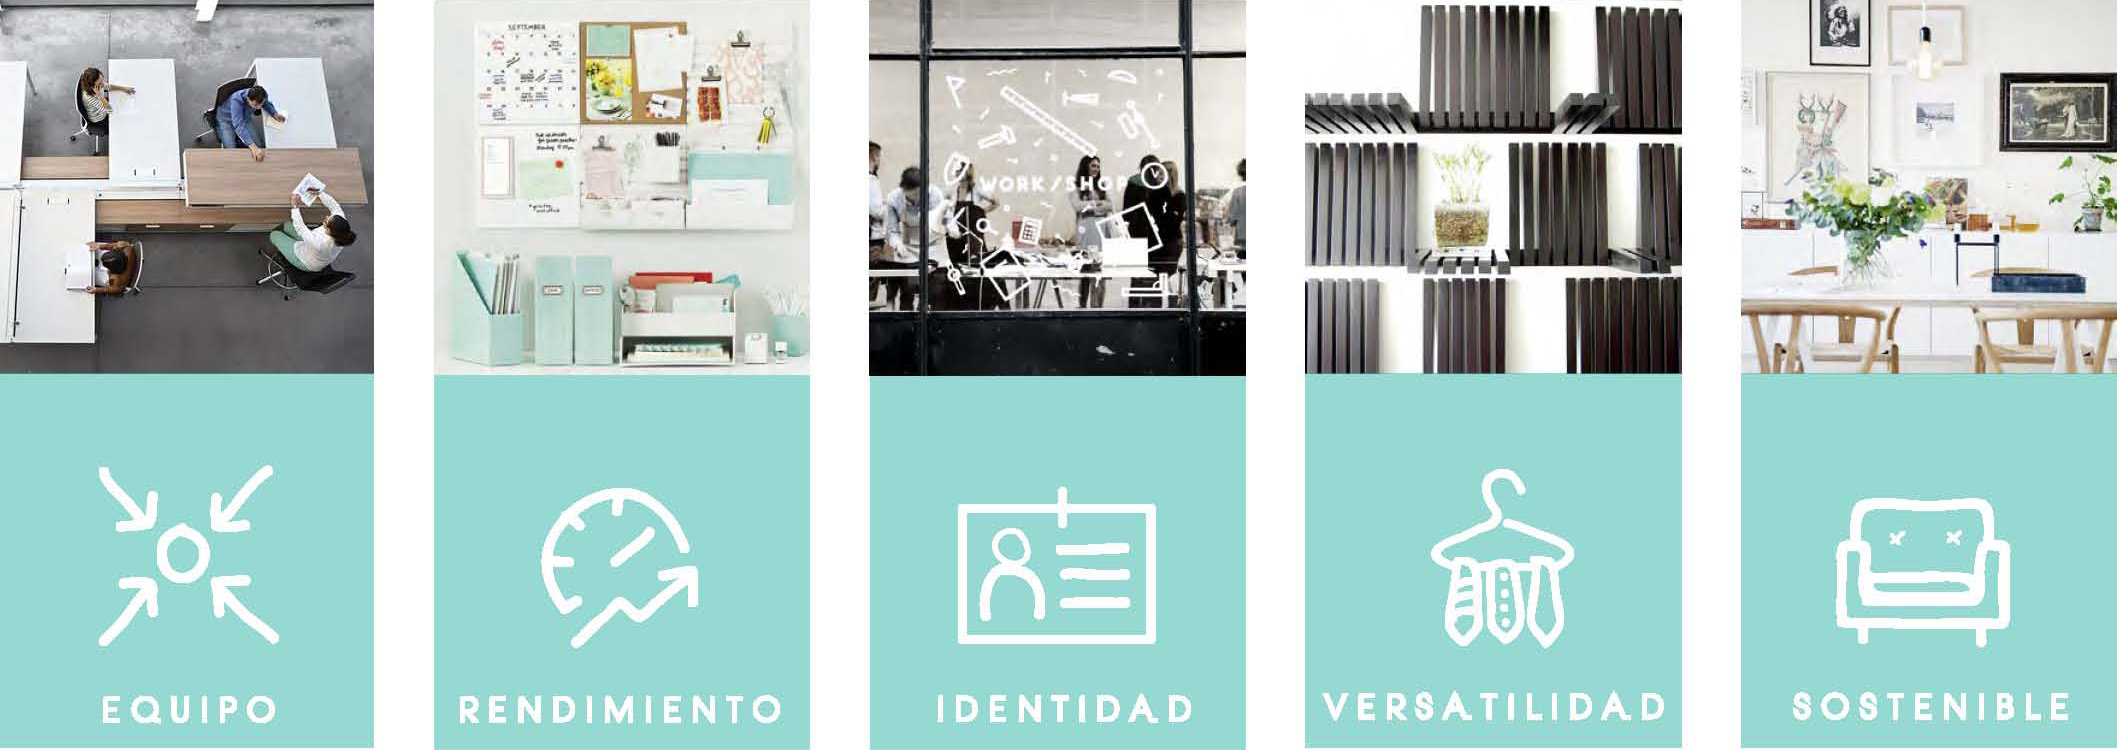 emmme studio blog desde babia living lab UPM conceptos slow homeoffice.jpg